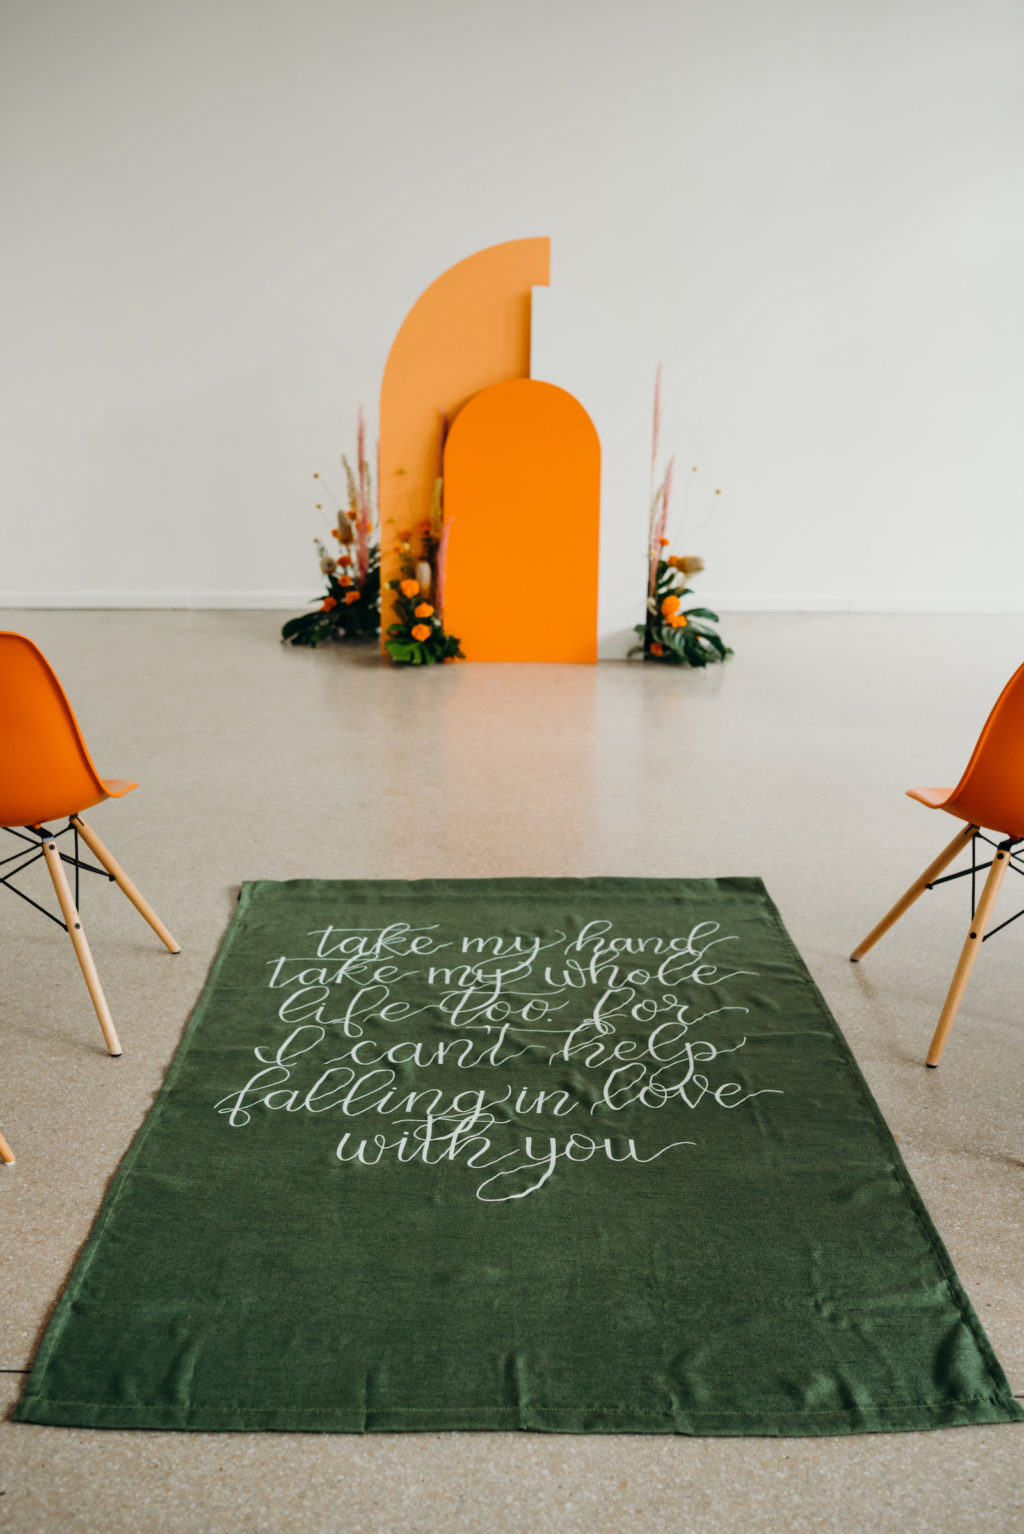 Retro Mid Century Modern Wedding Ceremony Decor, Orange and White Geometric Rounded White and Orange Arch, Green, Green Aisle Runner with White Script Font | Wedding Venue Tampa Garden Club